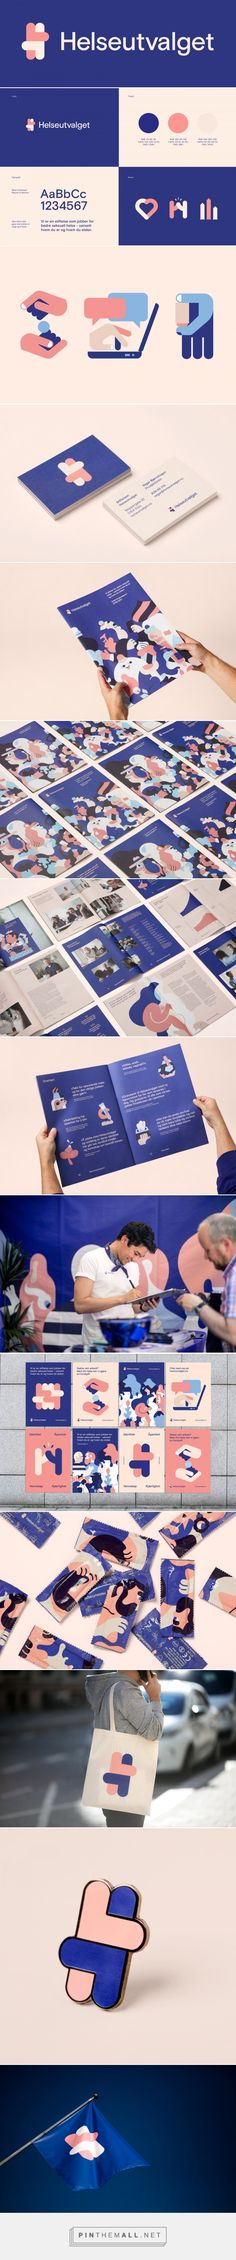 Brand New: New Logo and Identity for Helseutvalget by Bielke&Yang... - a grouped images picture - Pin Them All